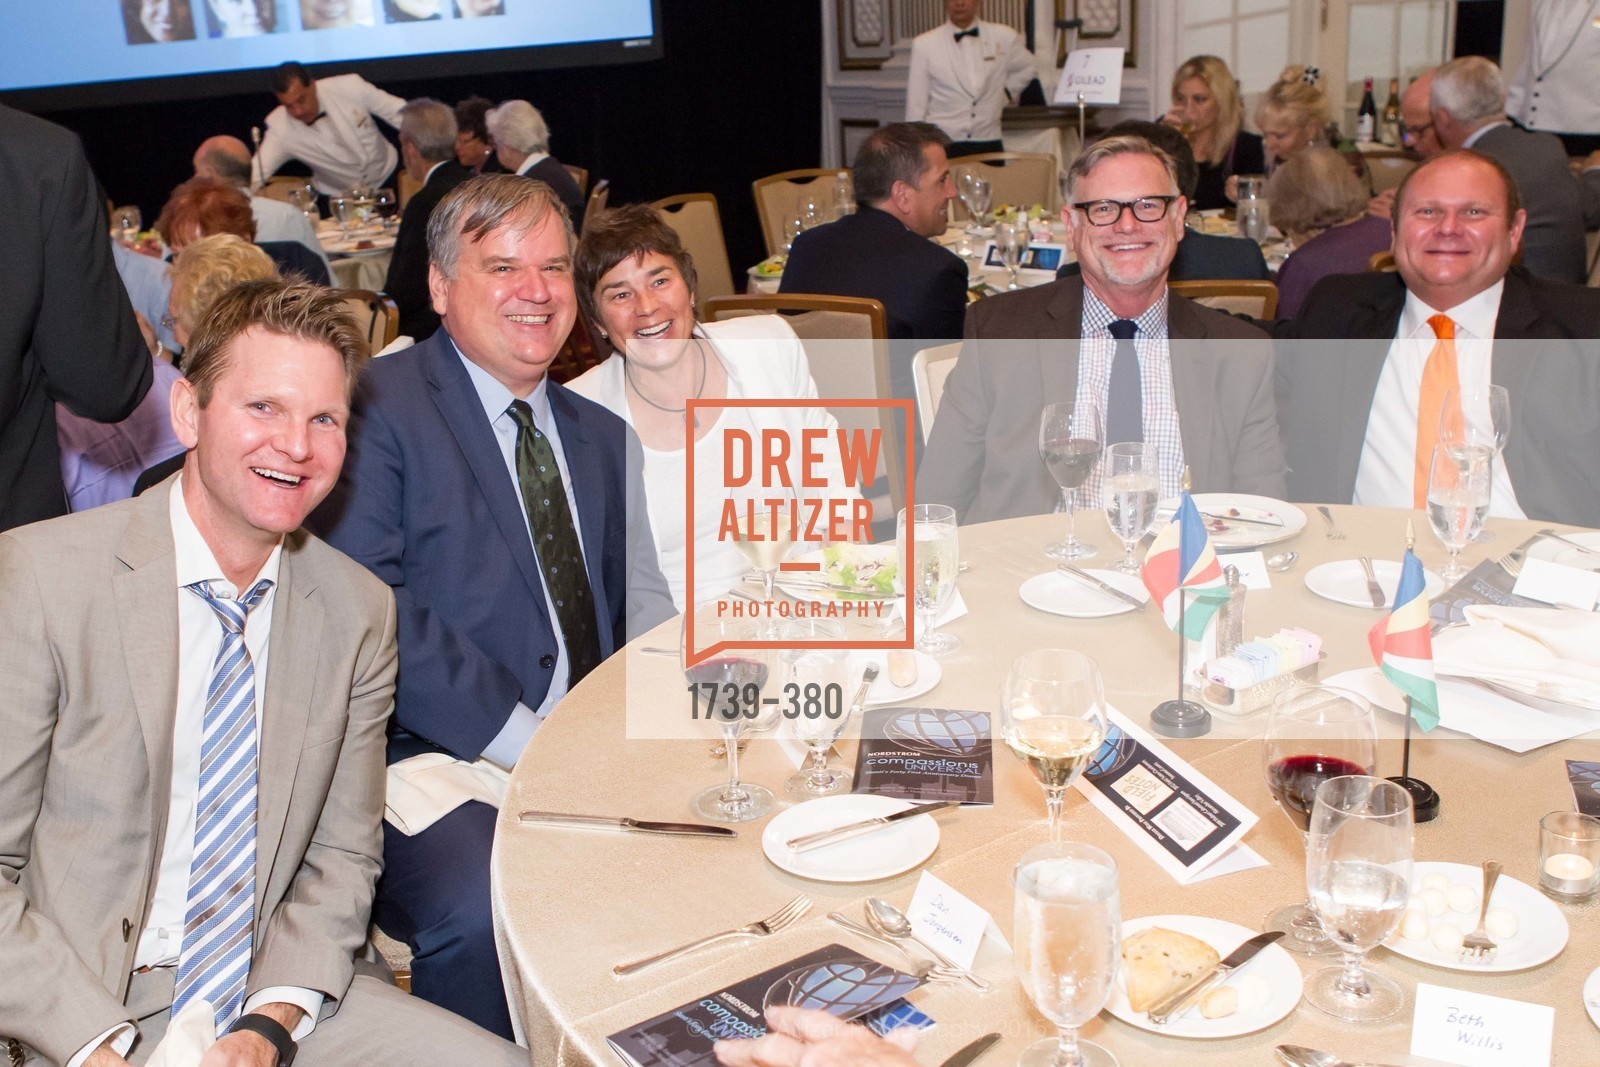 Top Picks, Shanti Project 41st Annual Compassion is Universal Dinner, October 14th, 2015, Photo,Drew Altizer, Drew Altizer Photography, full-service event agency, private events, San Francisco photographer, photographer California